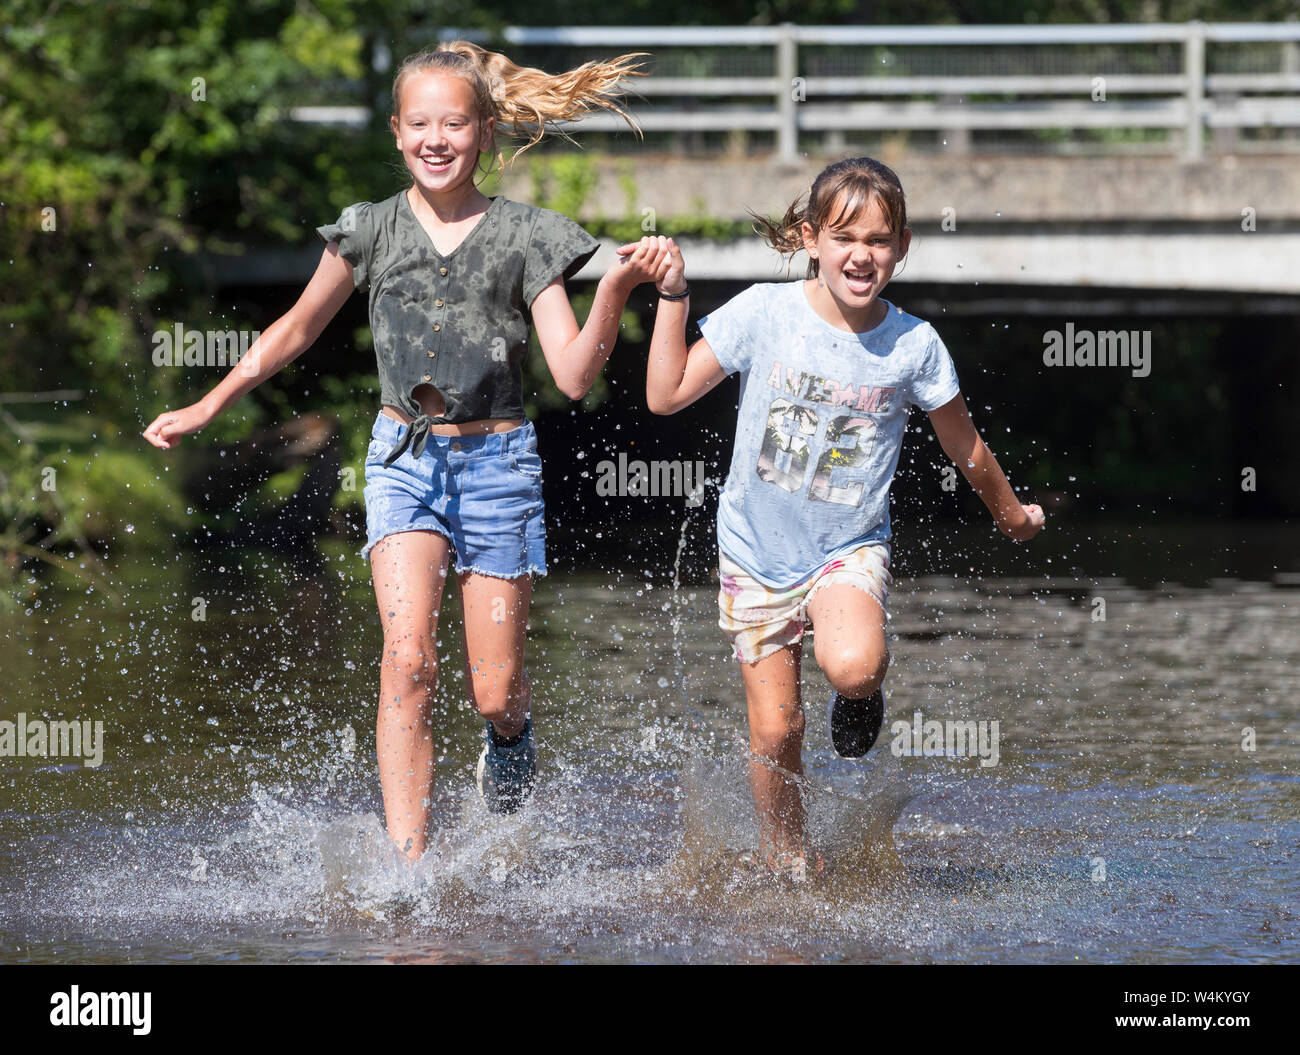 New Forest Hampshire, 24th July 2019. UK Weather: Sisters Ebony 11 and Isobella 8 cool off in the river at Brockenhurst in the New Forest as the hot weather continues across the UK. Credit Stuart Martin/Alamy Live News Stock Photo